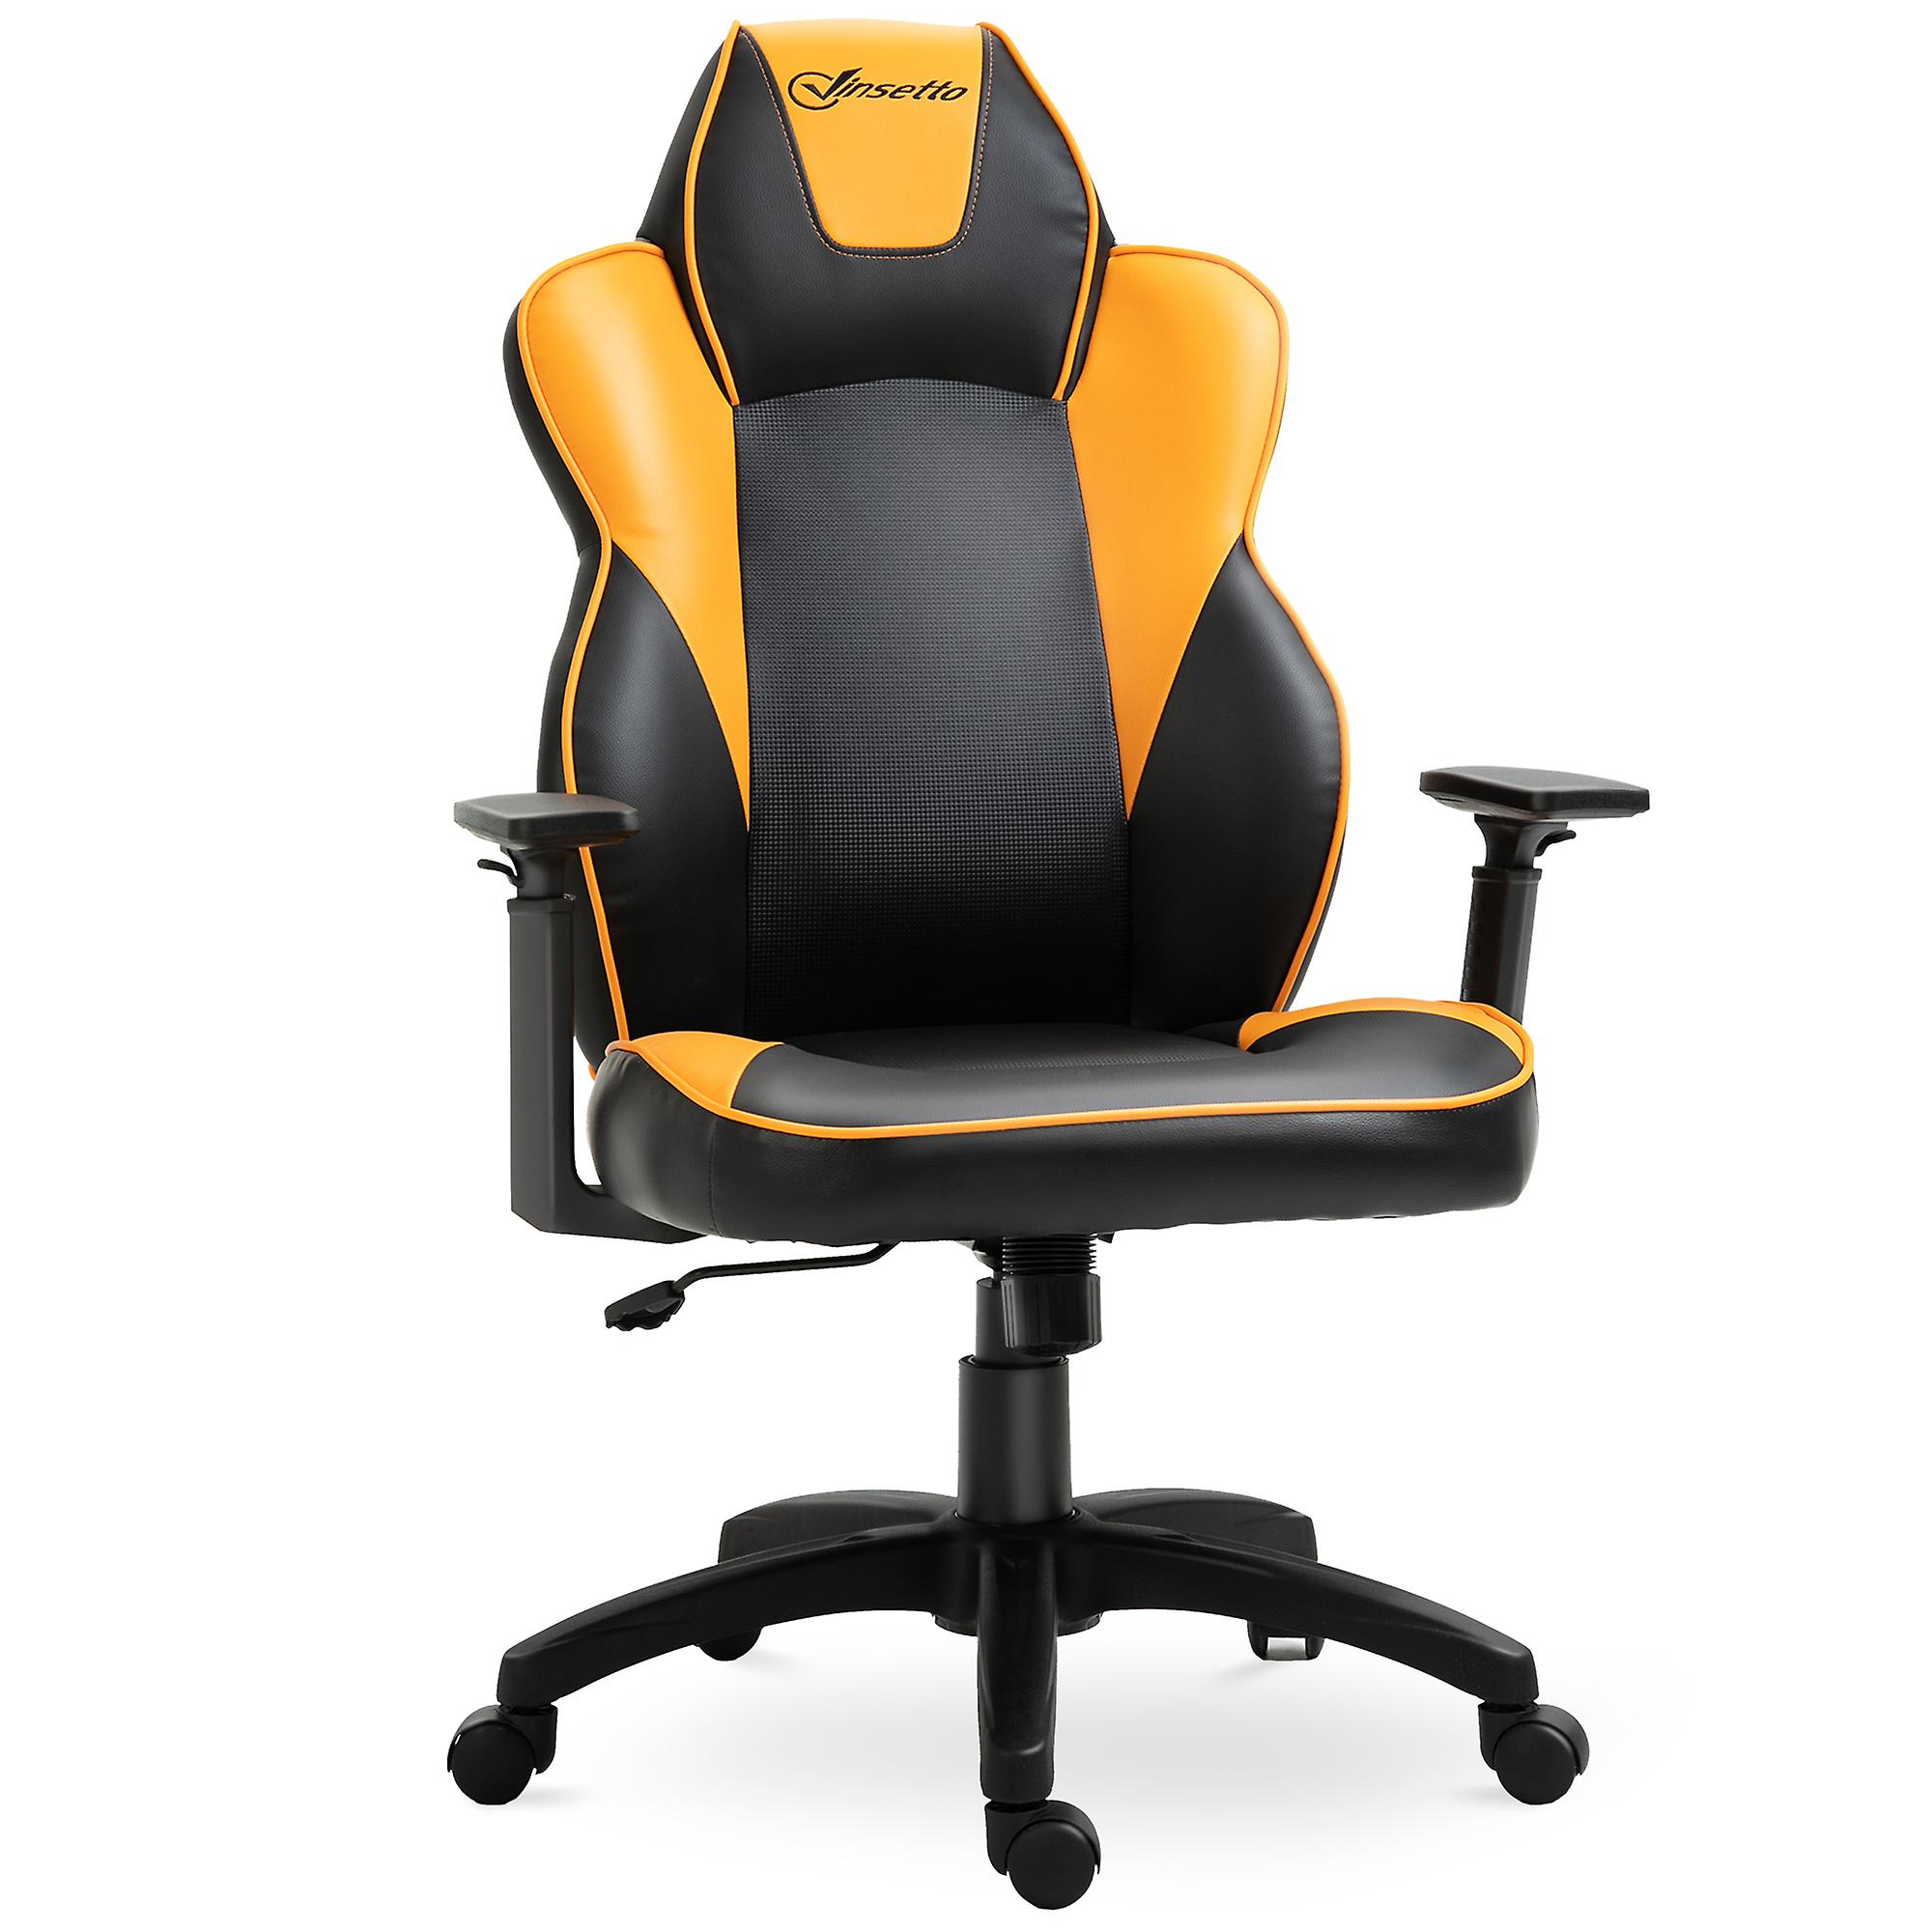 Picture of: Vinsetto Pu Leather Office Swivel Chair W Orange Panels Padding High Back Adjustable Height Armrests Wheels Home Gaming Seat Black Fruugo Uk